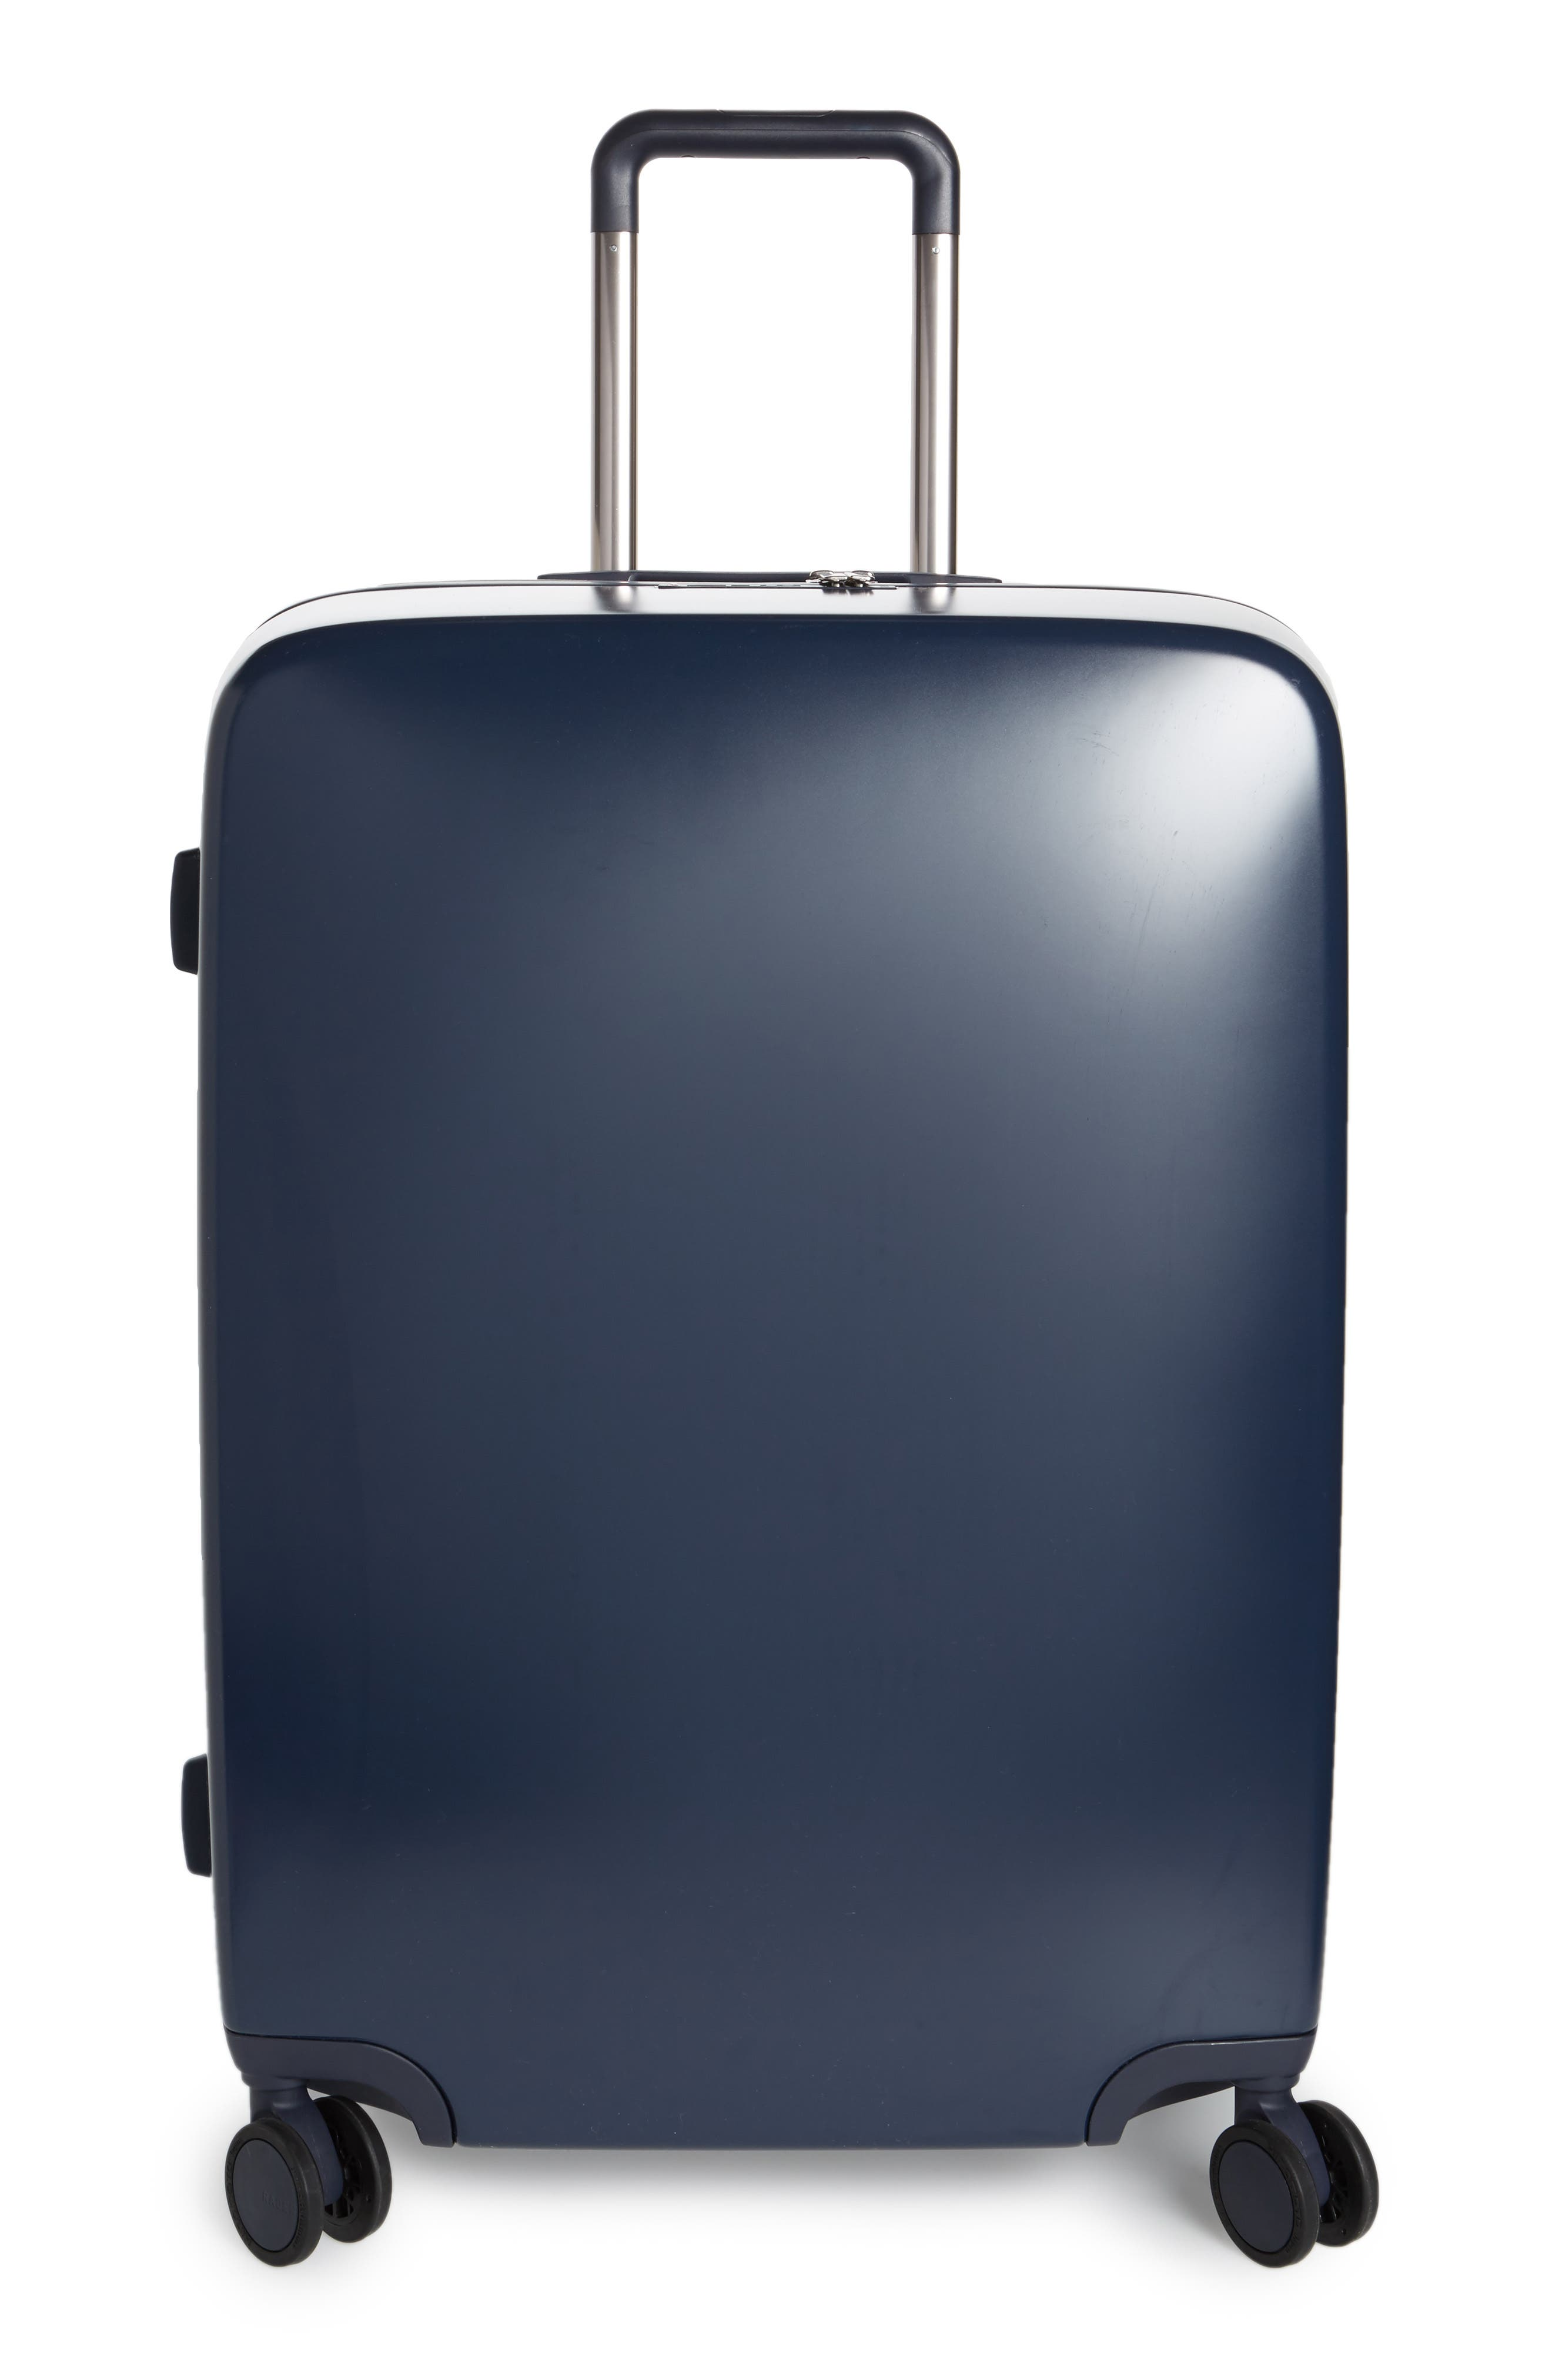 Raden The A28 28-Inch Charging Wheeled Suitcase